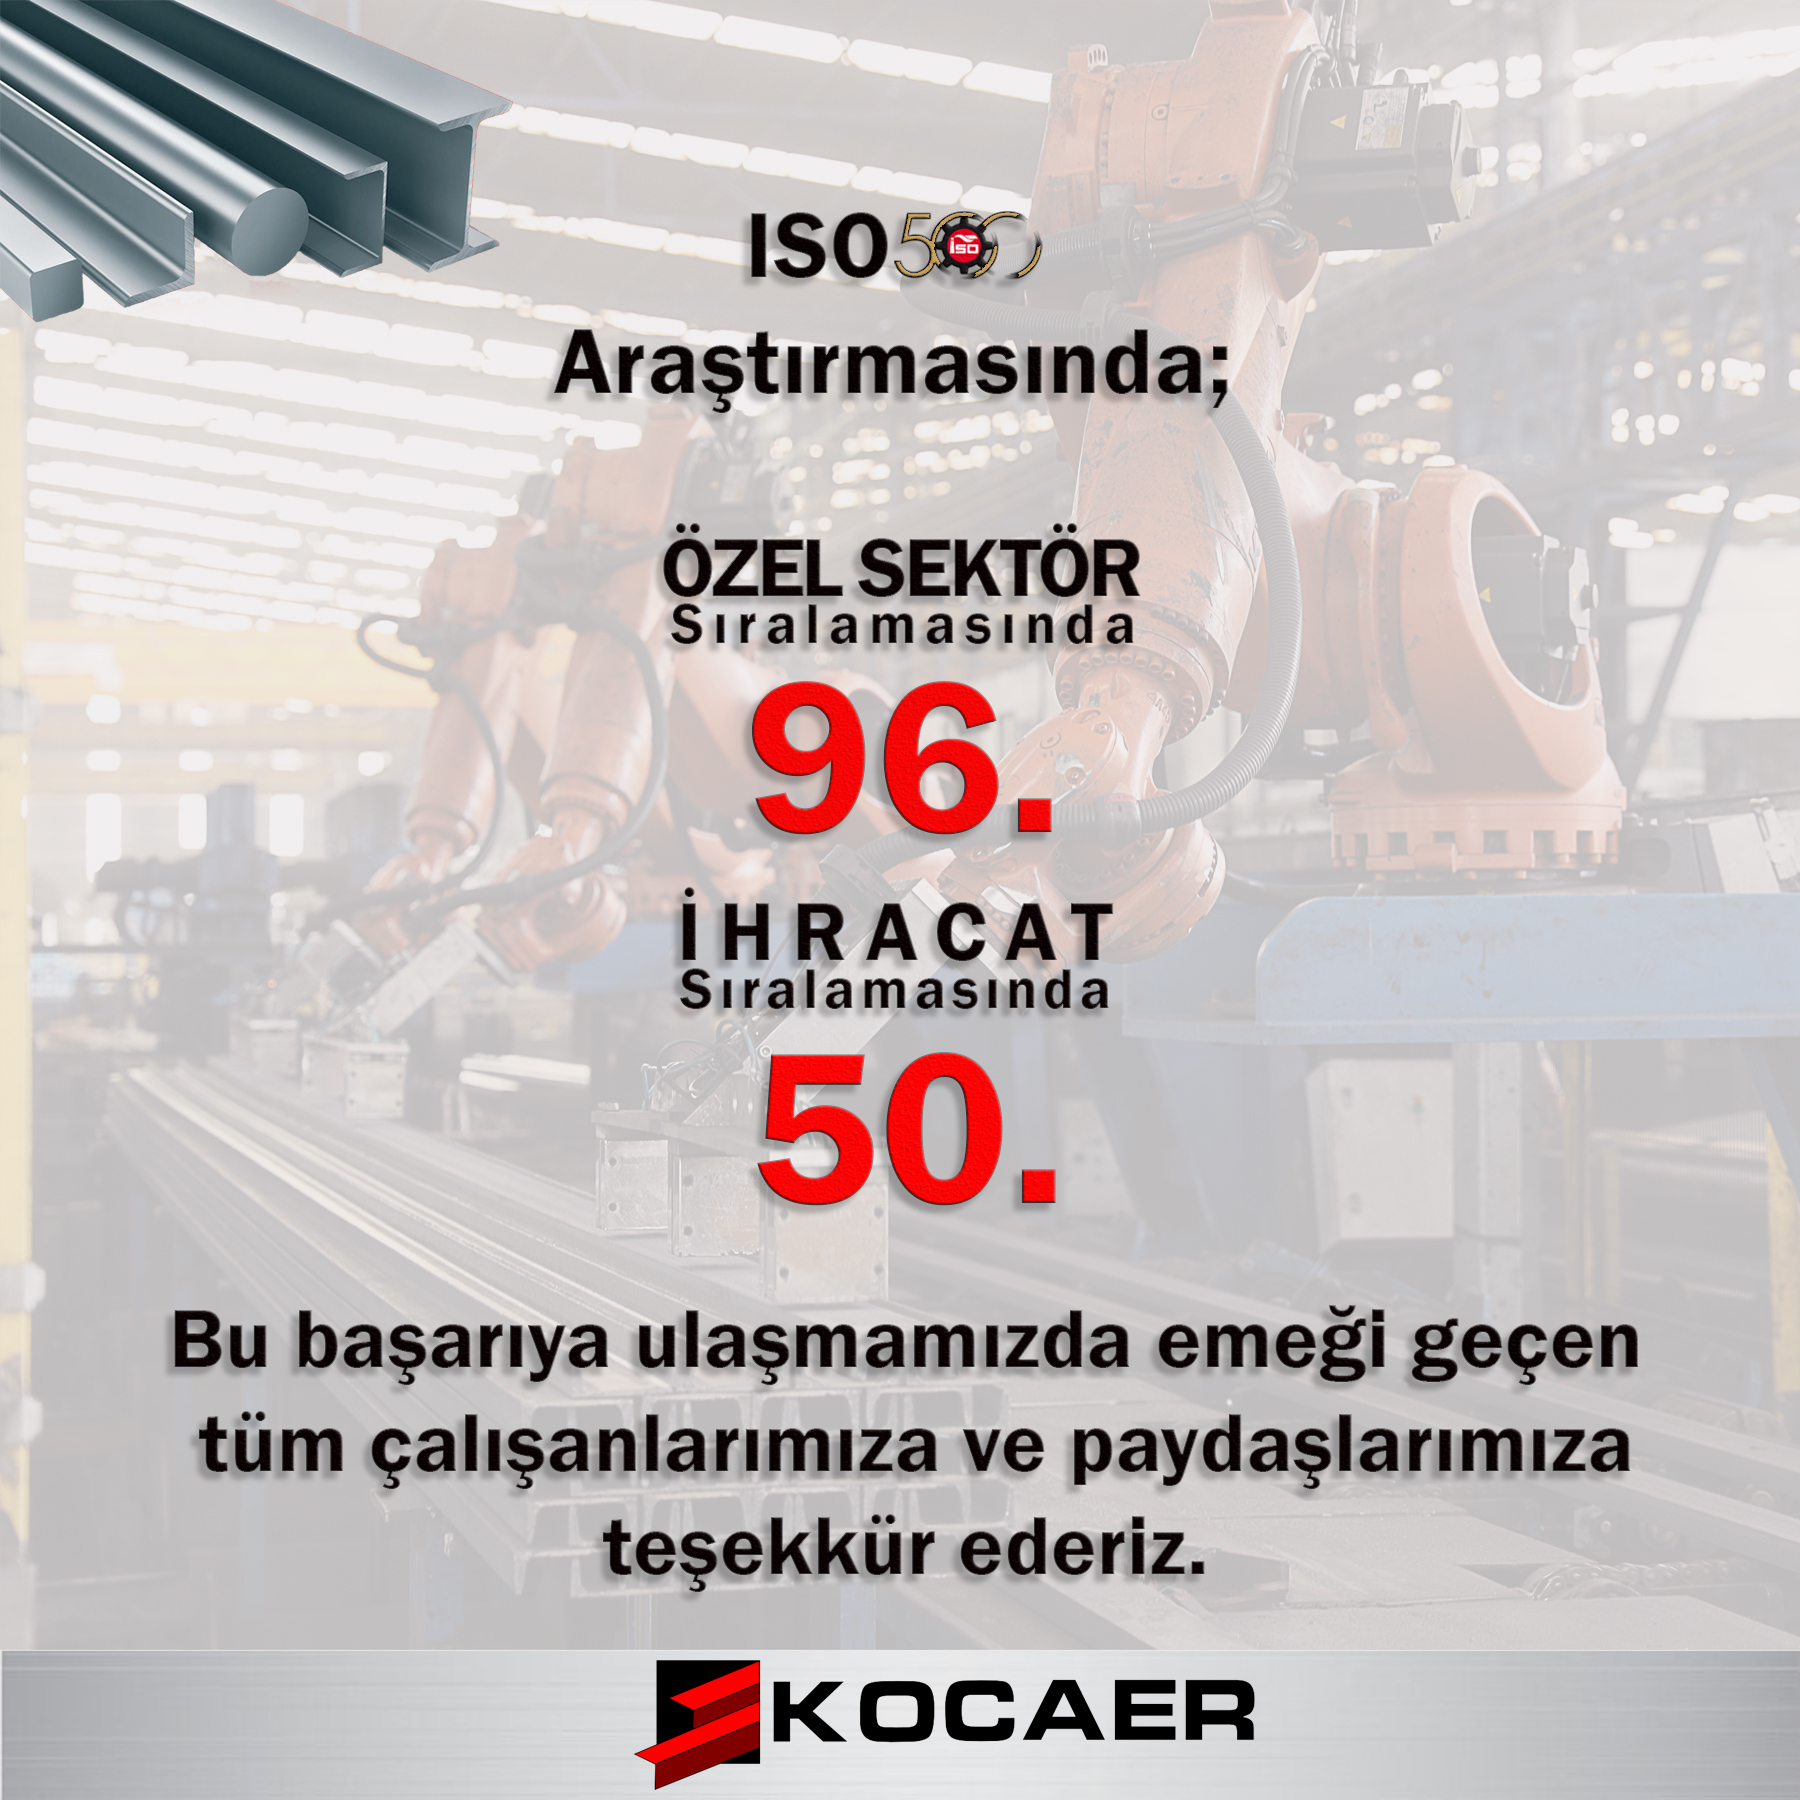 Turkey's Top 500 Industrial Enterprises 2018